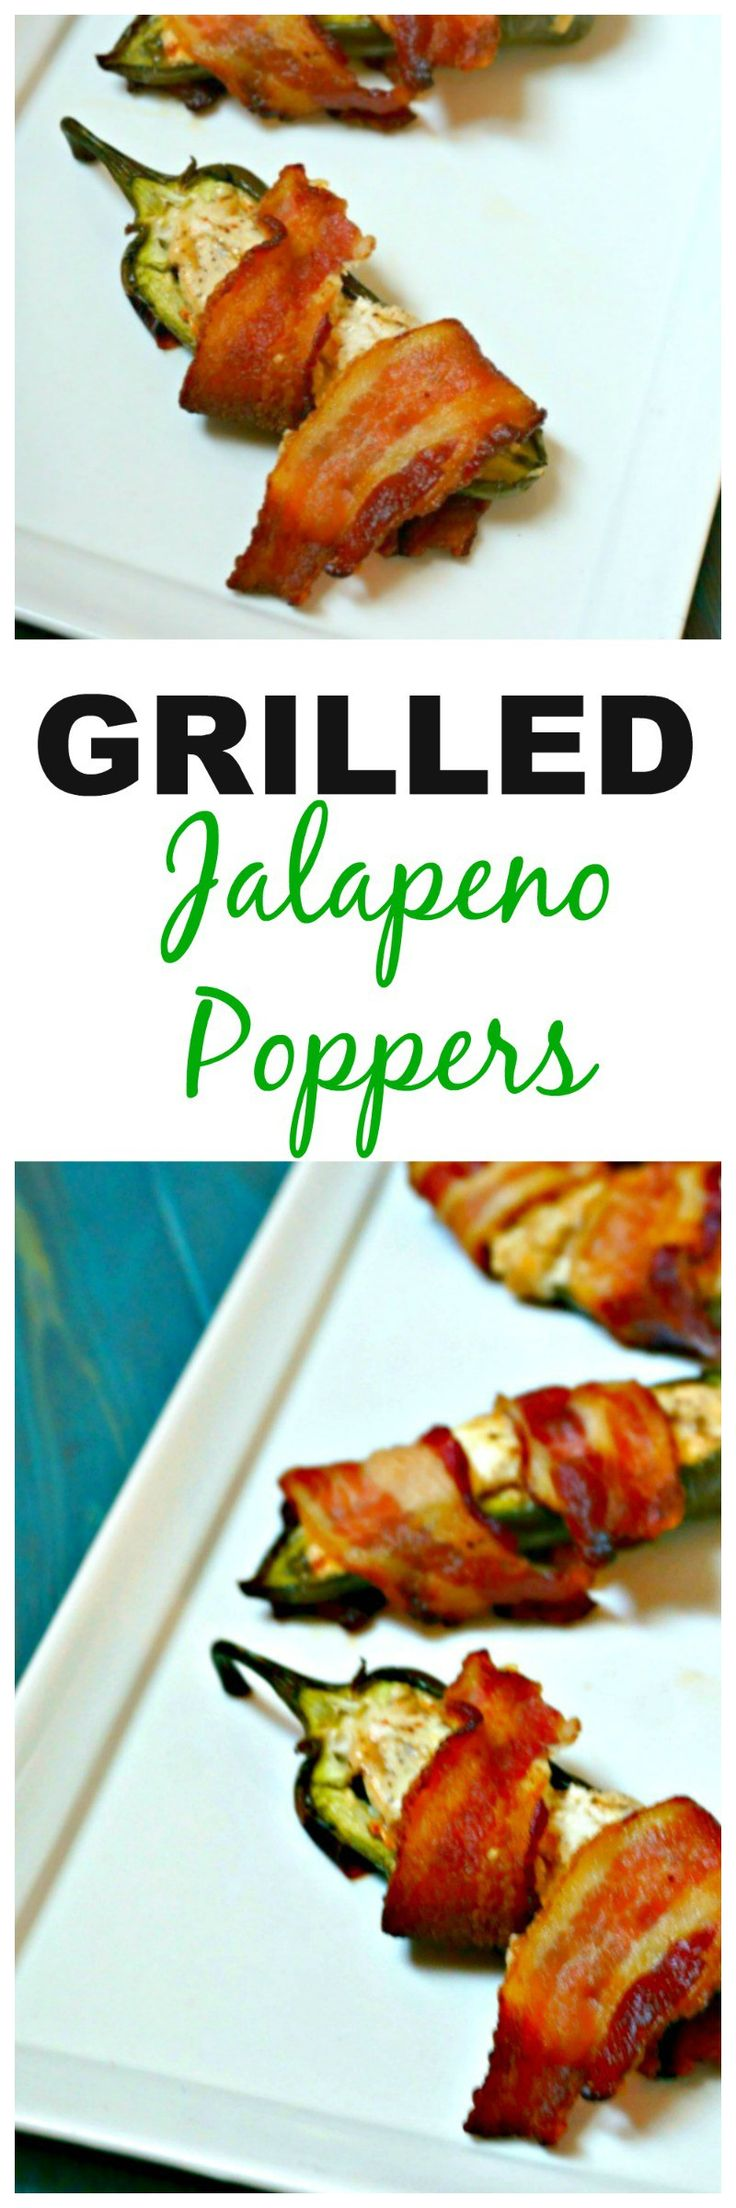 Grilled Jalapeno Poppers: Spicy jalapenos are stuffed with a smoky ...